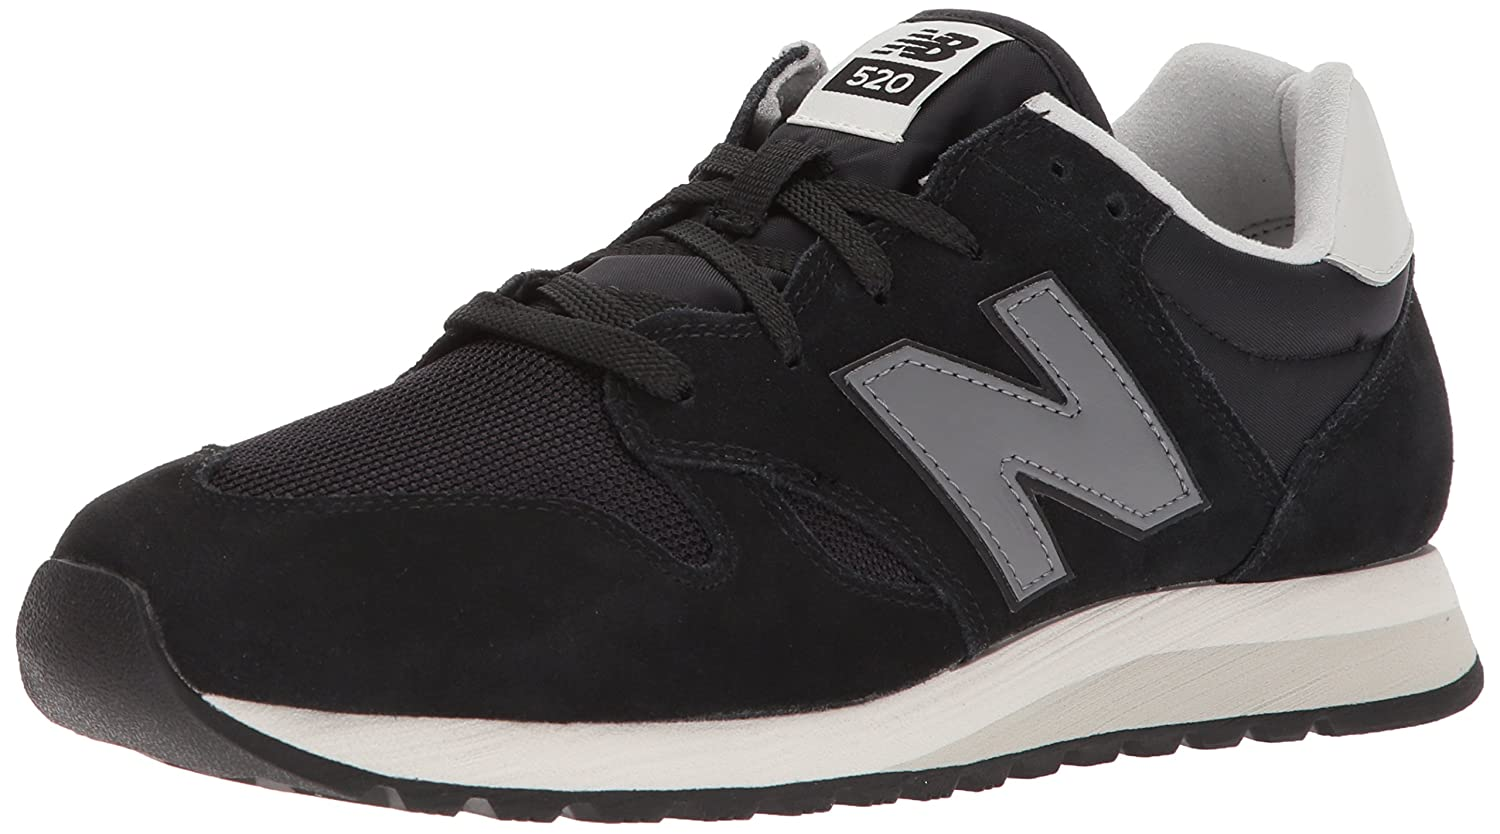 Unisex Adults U520v1 Trainers New Balance Buy Cheap Choice Low Price Sale Sale Pay With Paypal Cheap Sale Exclusive TYXrGn